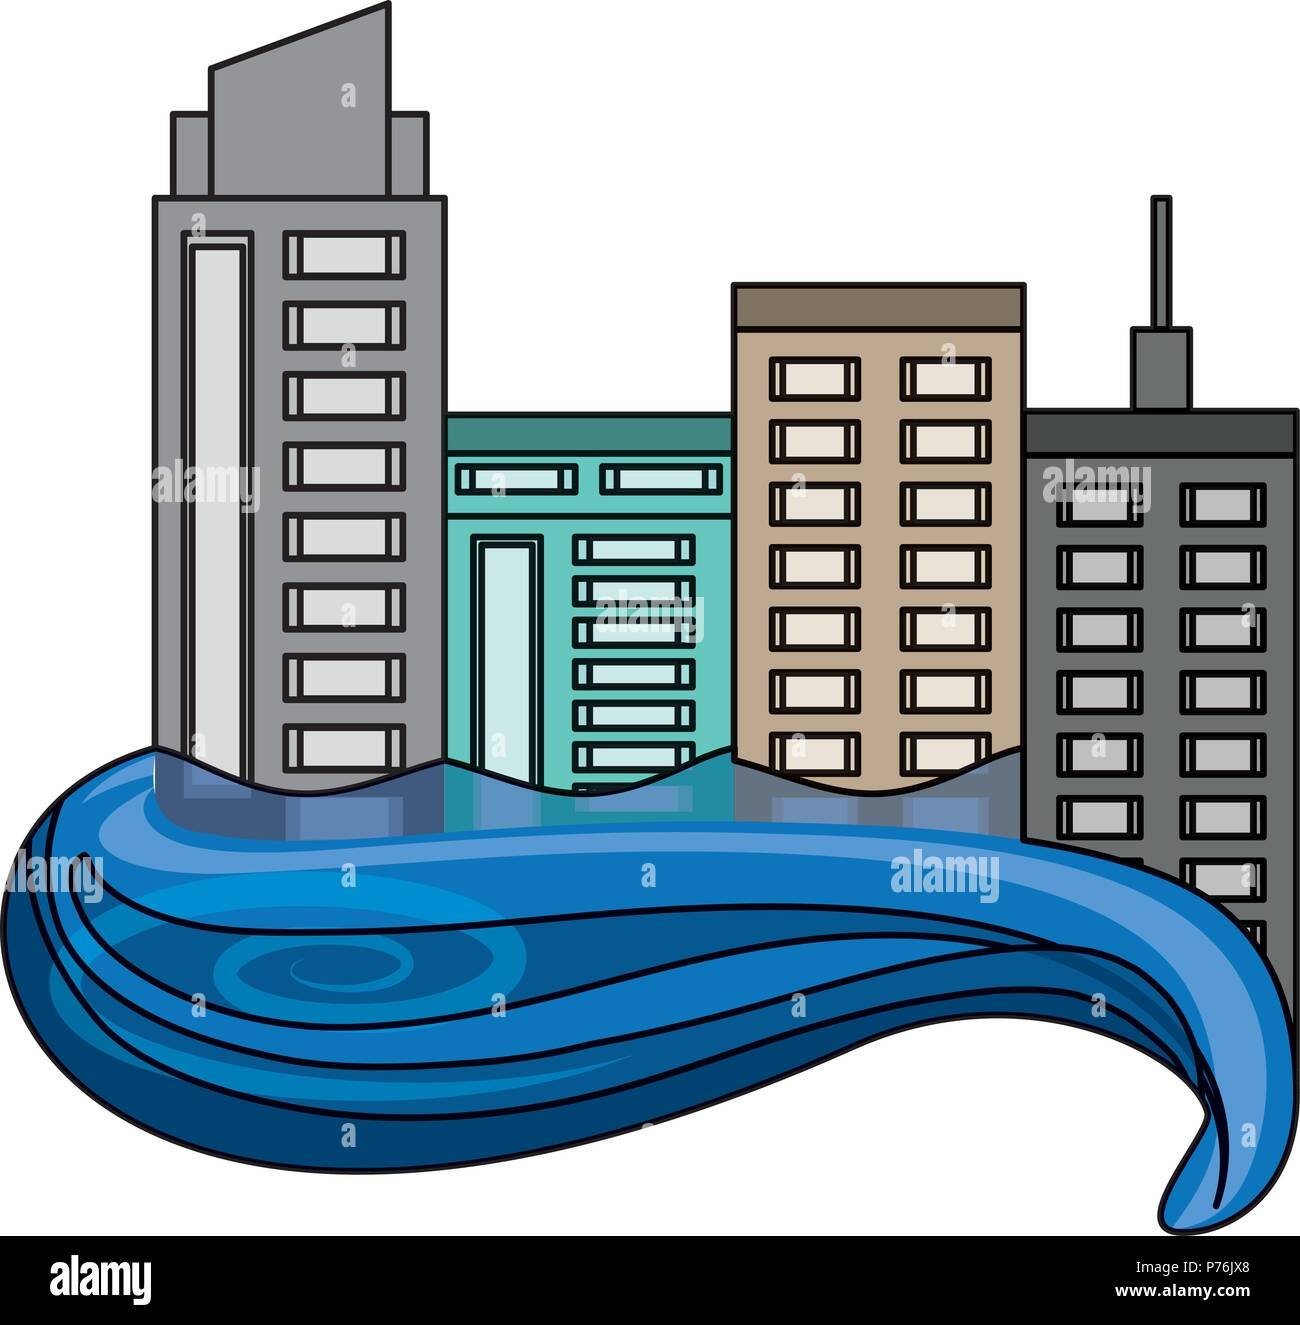 river at the city buildings icon over white background, vector illustration - Stock Vector